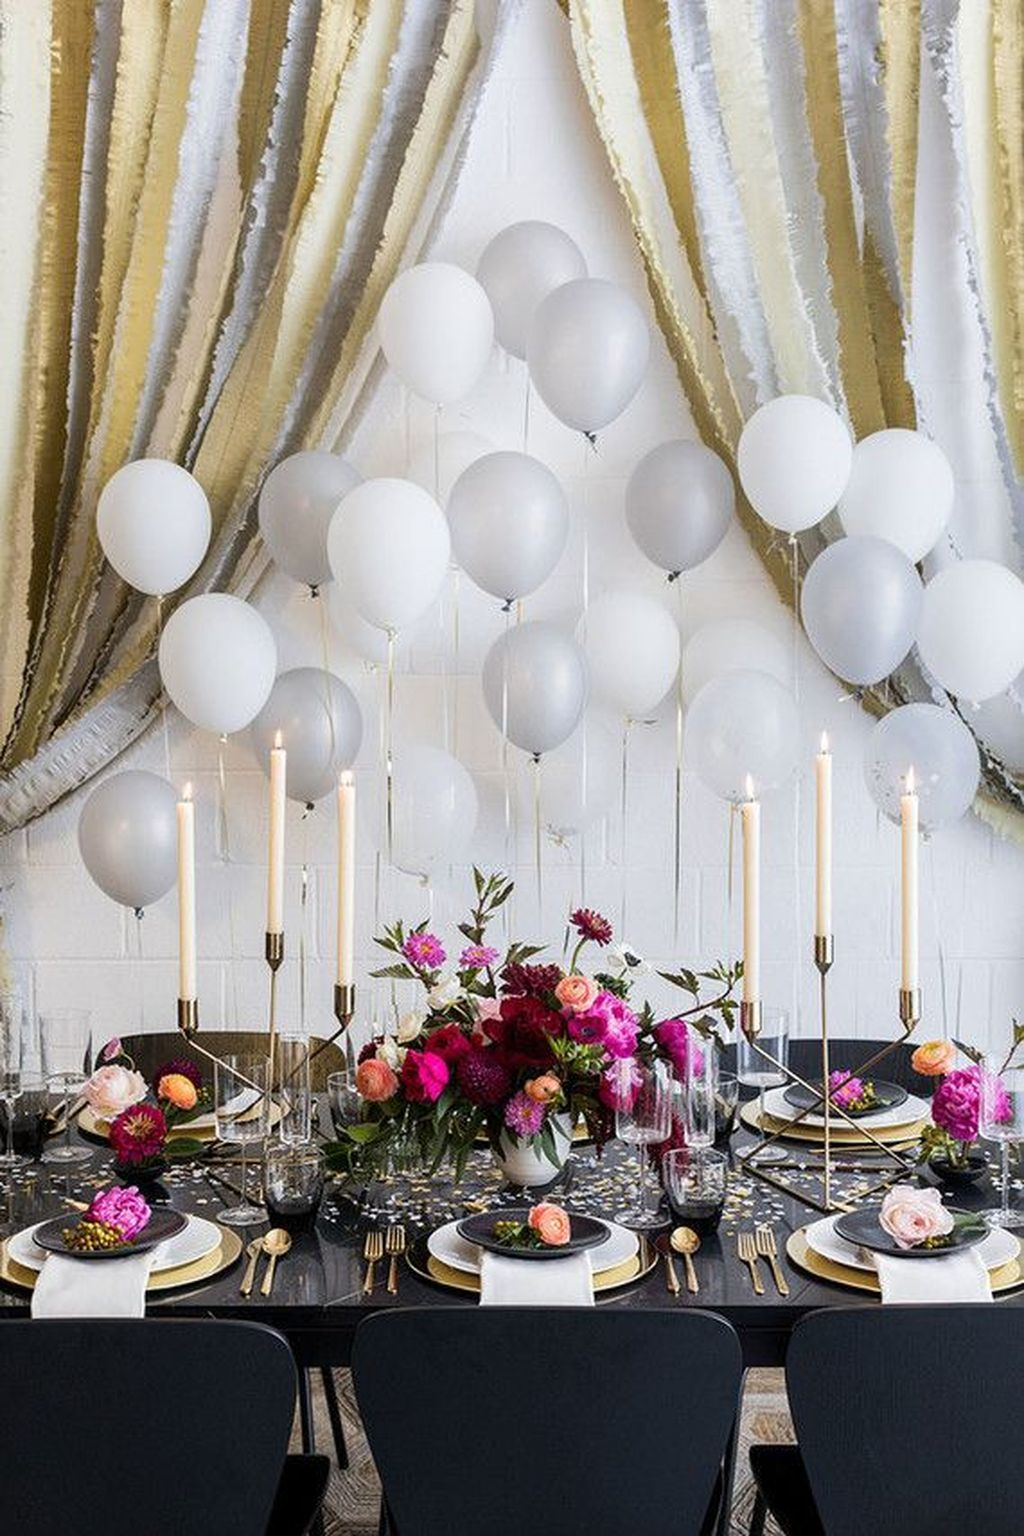 20 Gorgeous Gold And Black New Years Eve Party Decor Ideas You Should Try Trenduhome Wedding Balloon Decorations Wedding Balloons Balloon Decorations